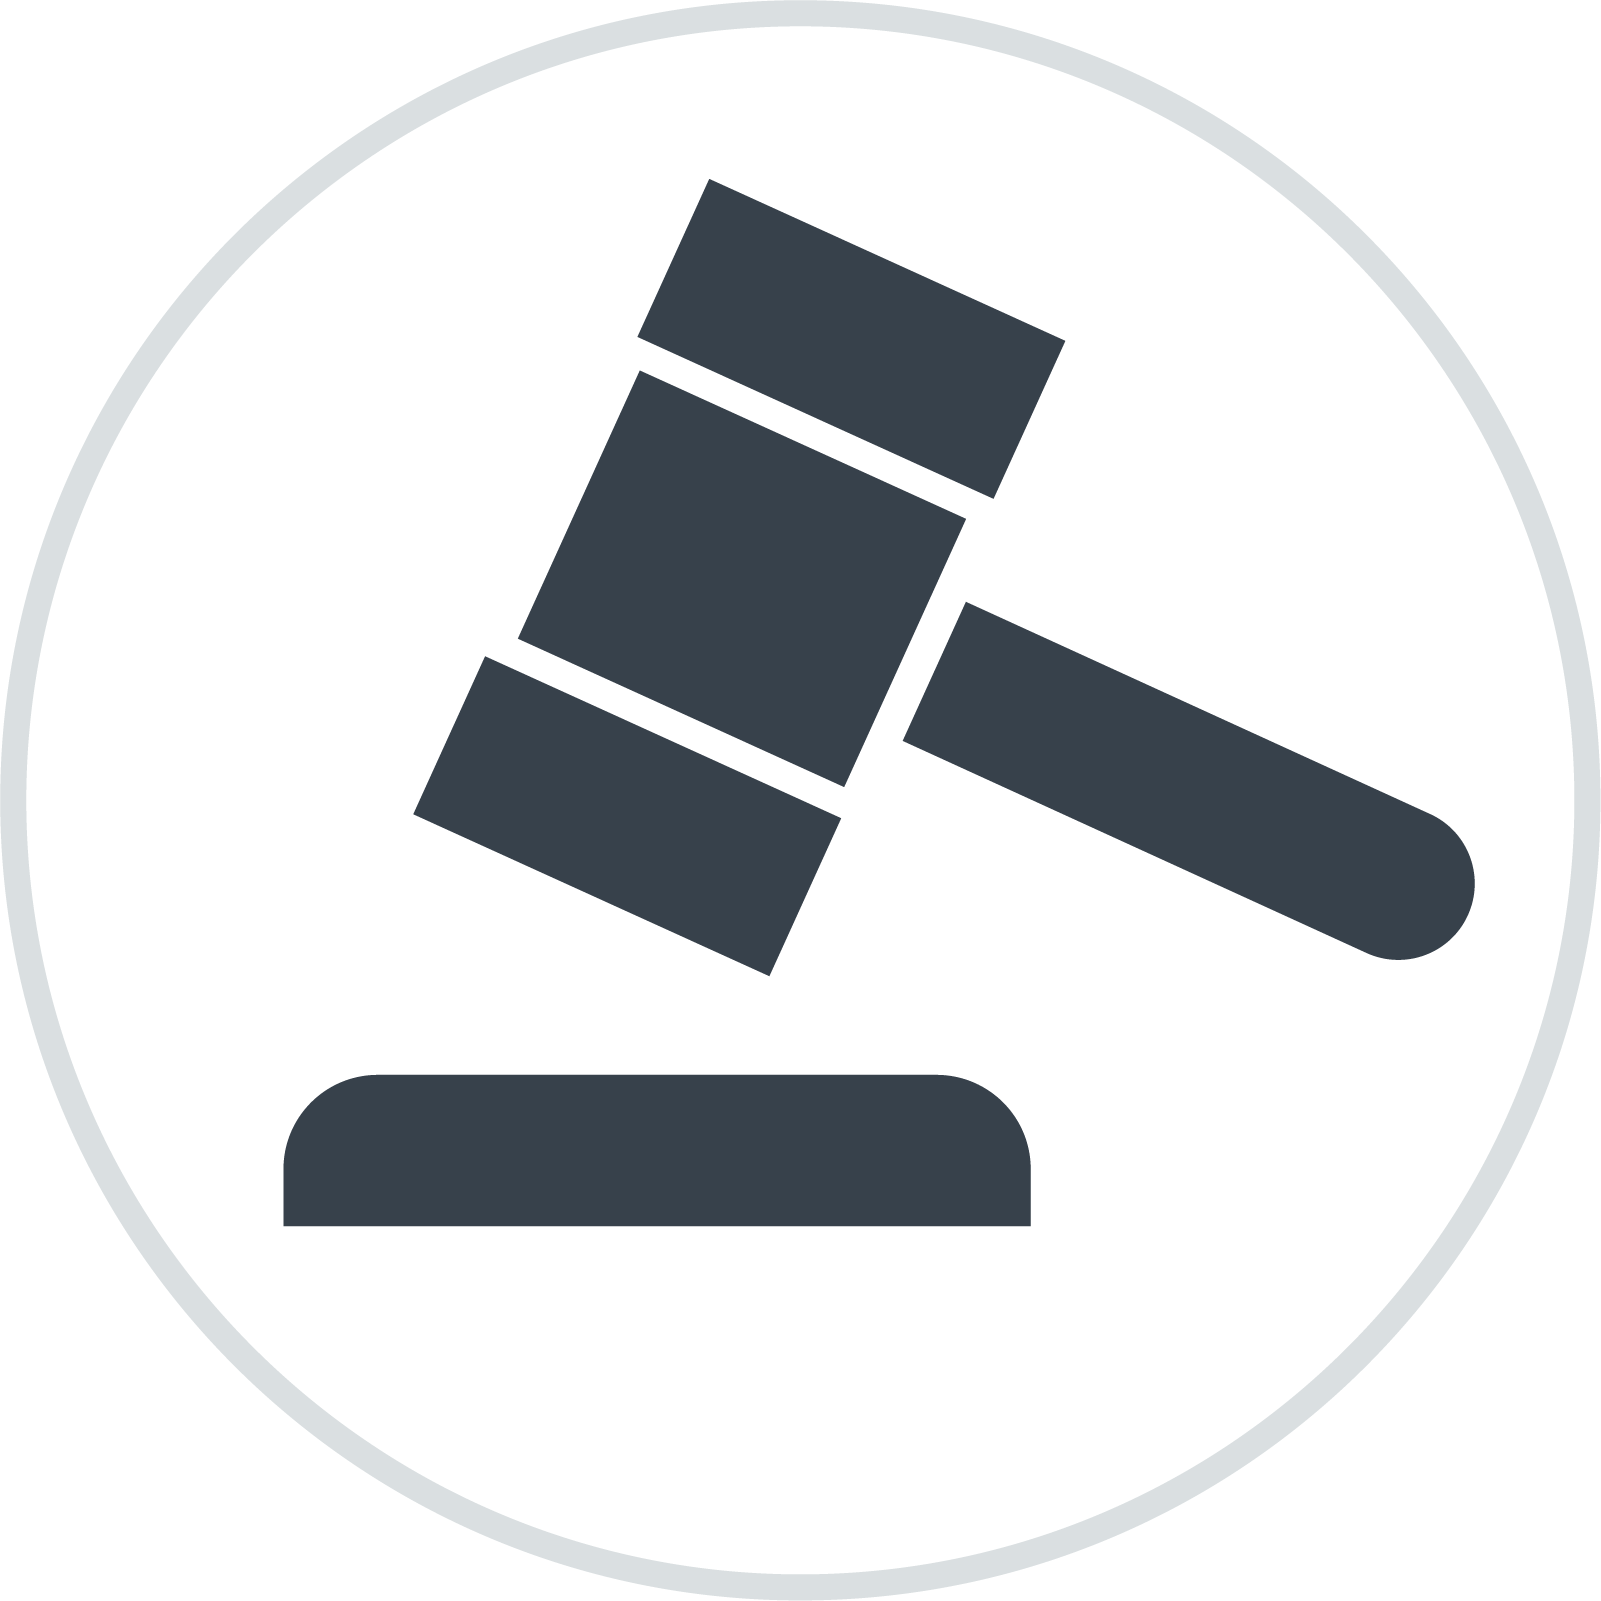 Governance & Regulation